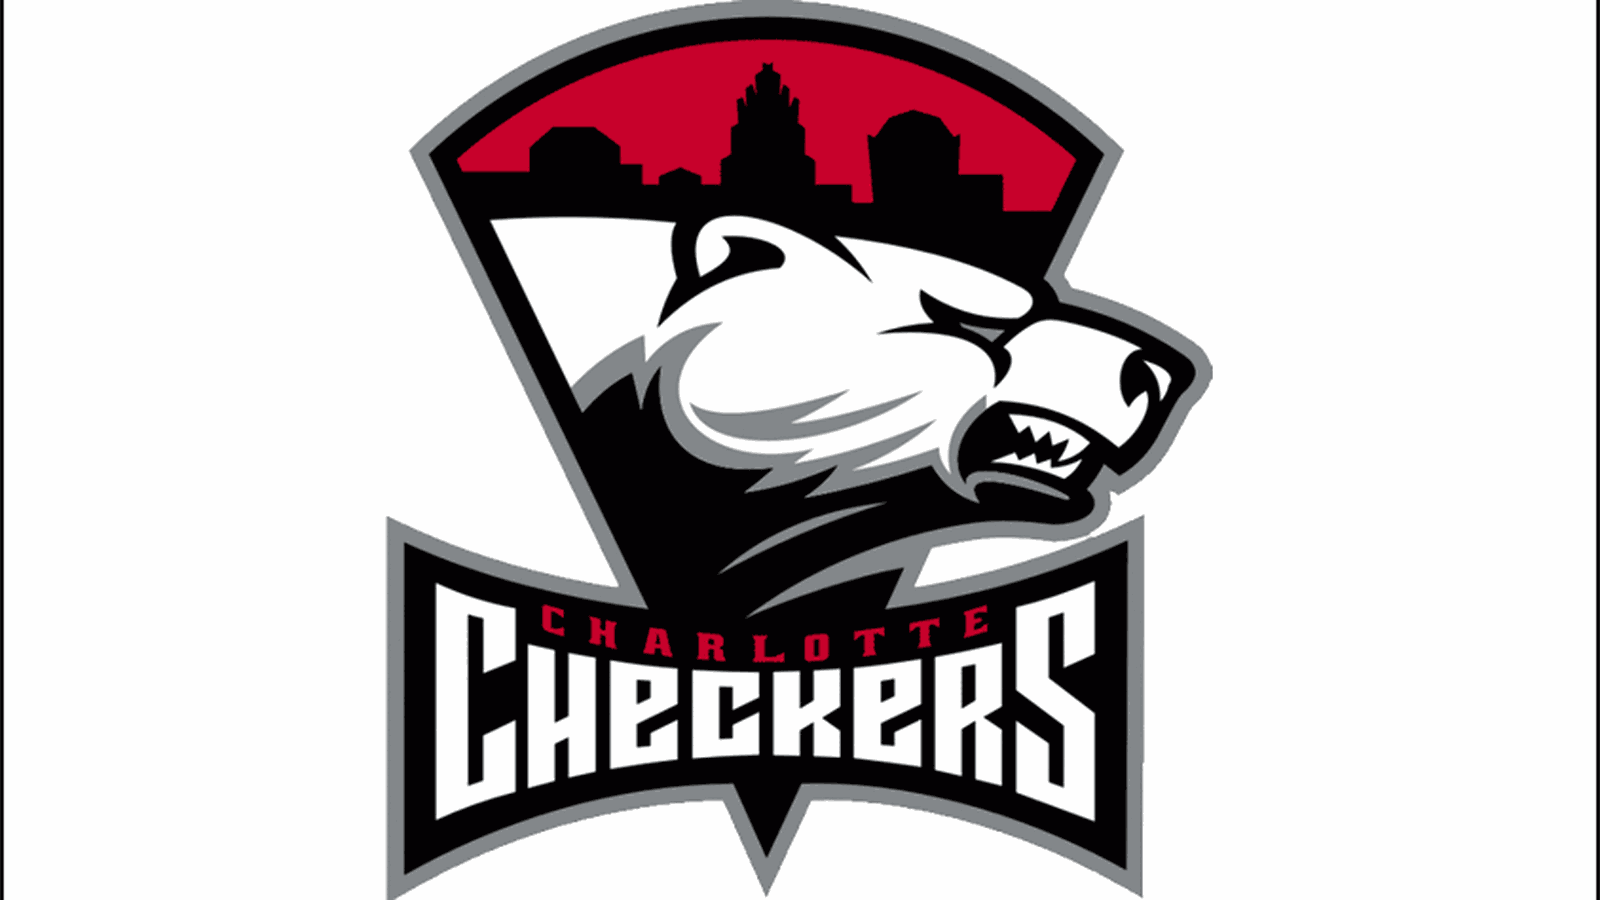 5171_charlotte_checkers-jersey-2011.0.0